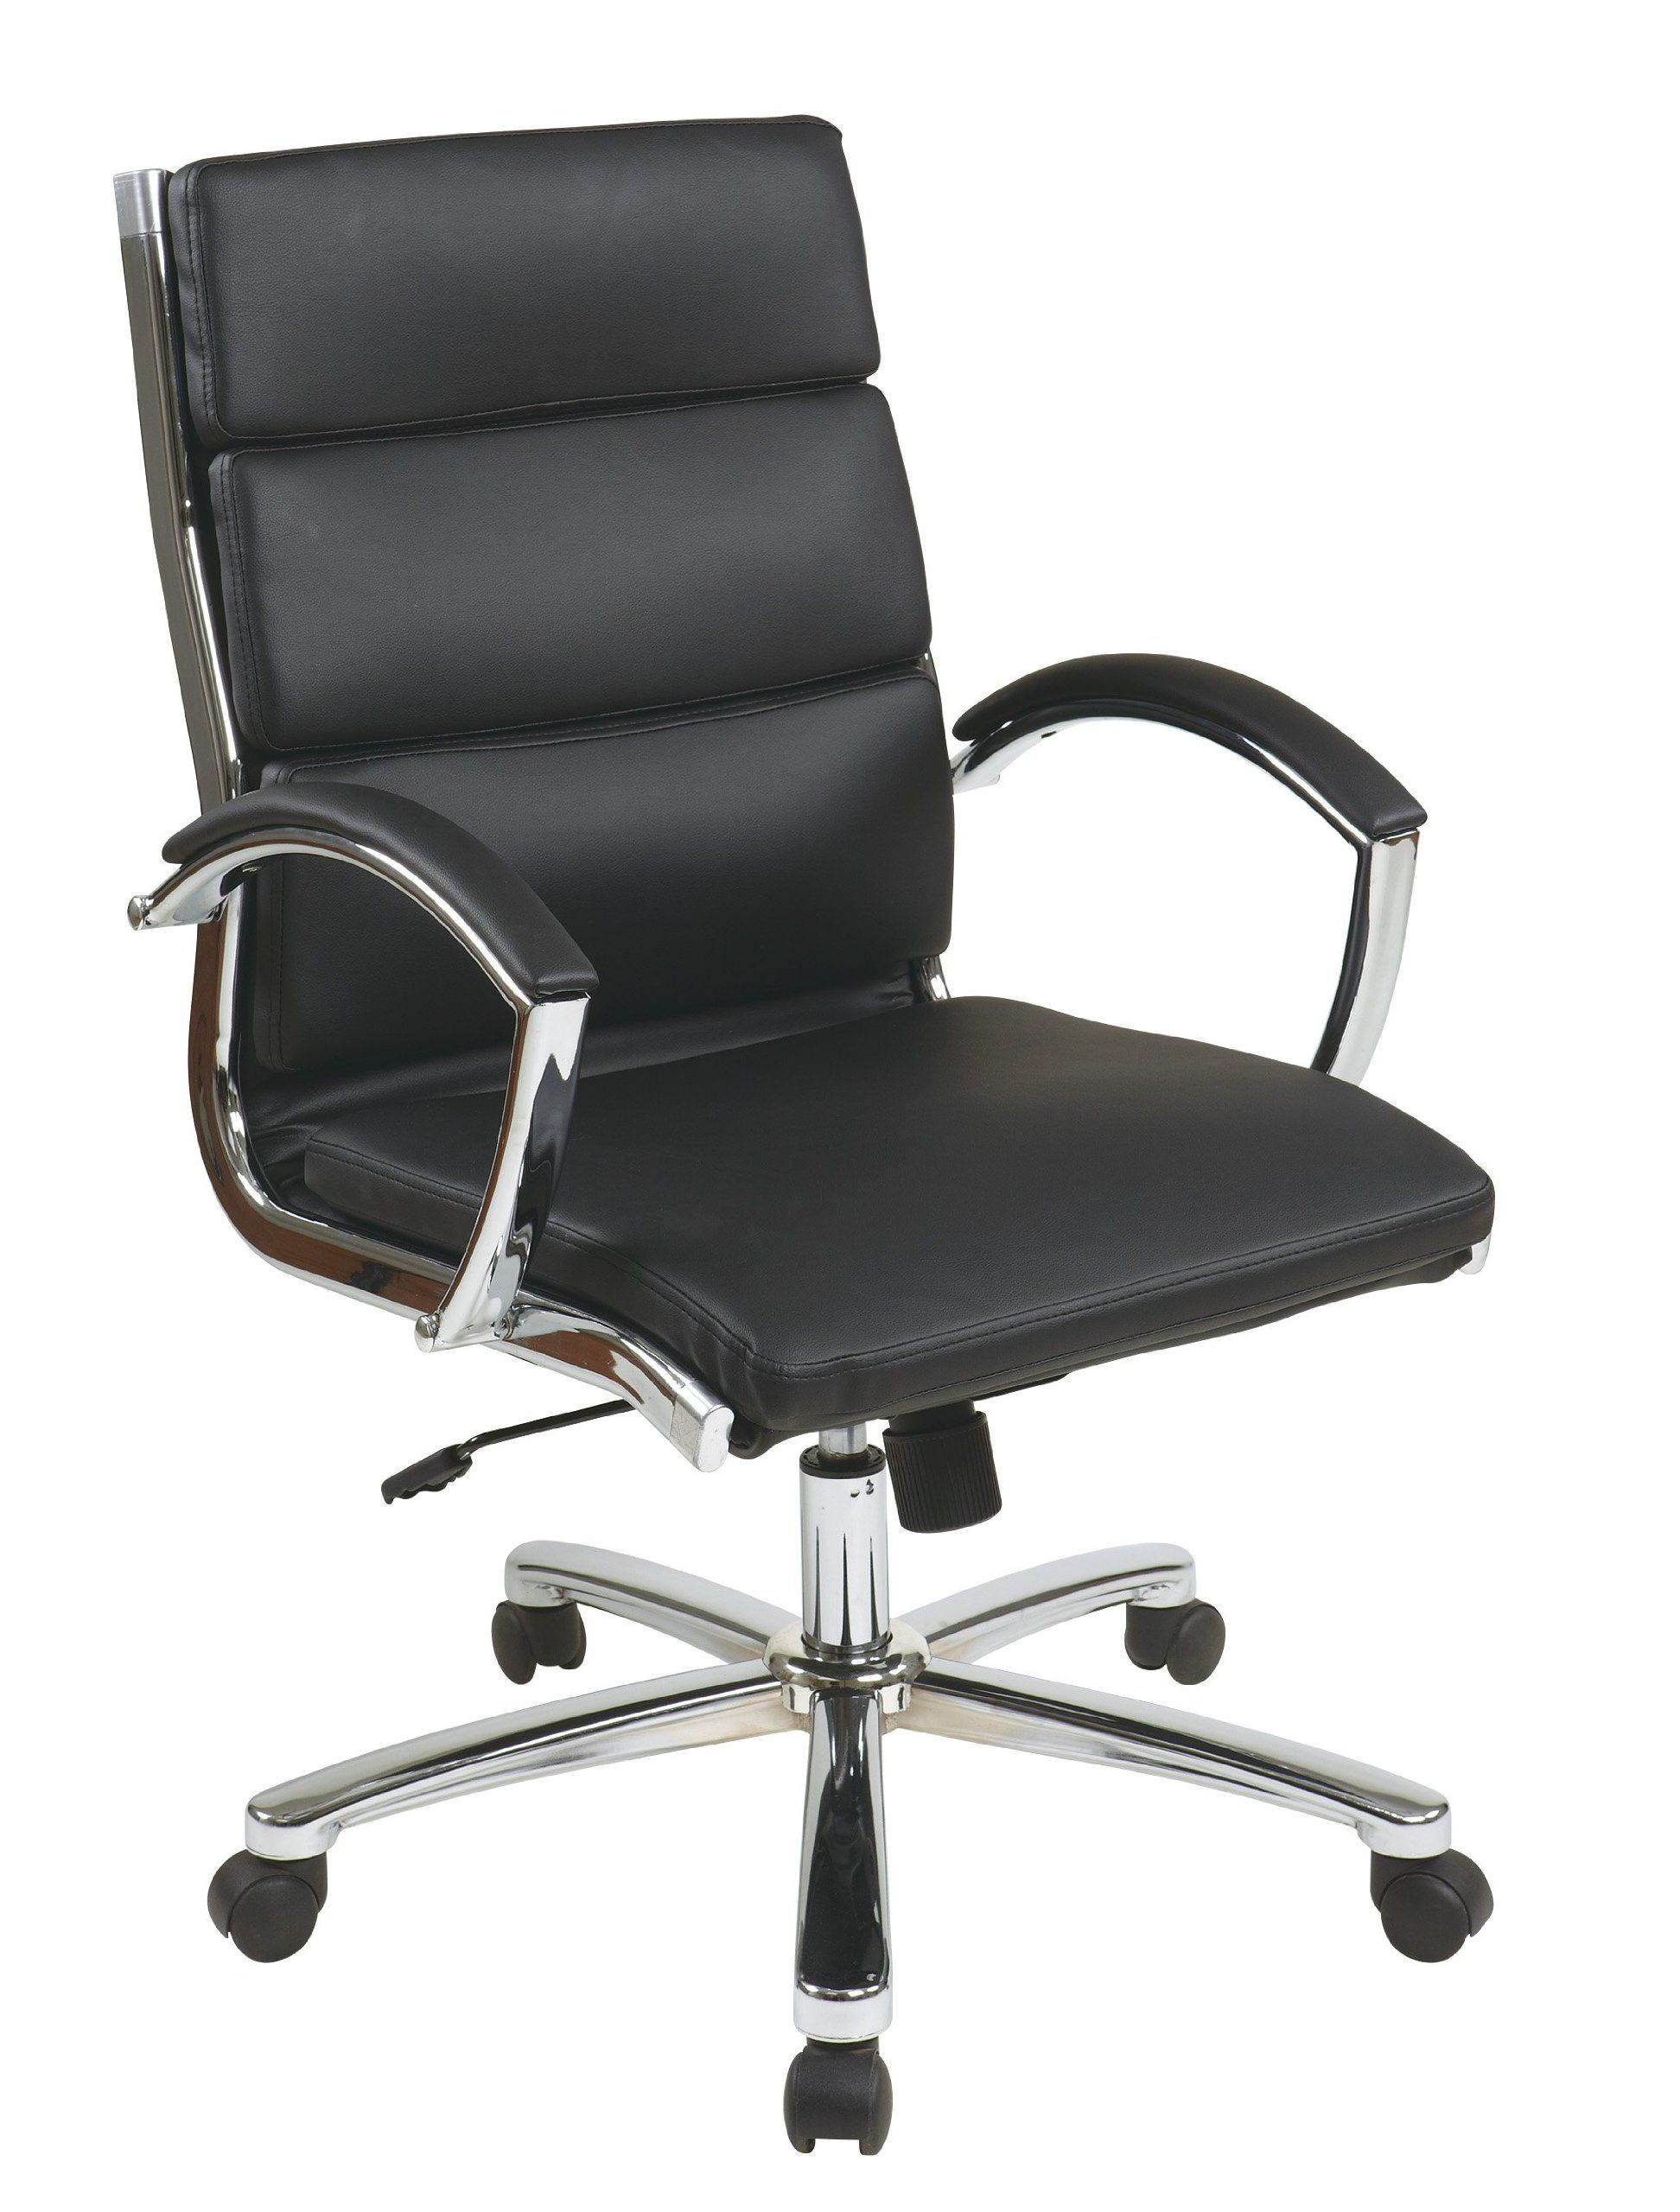 office star chairs. Office Star Mid Back Executive Faux Leather Chair With Chrome Finished Base And Padded Arms, Chairs L